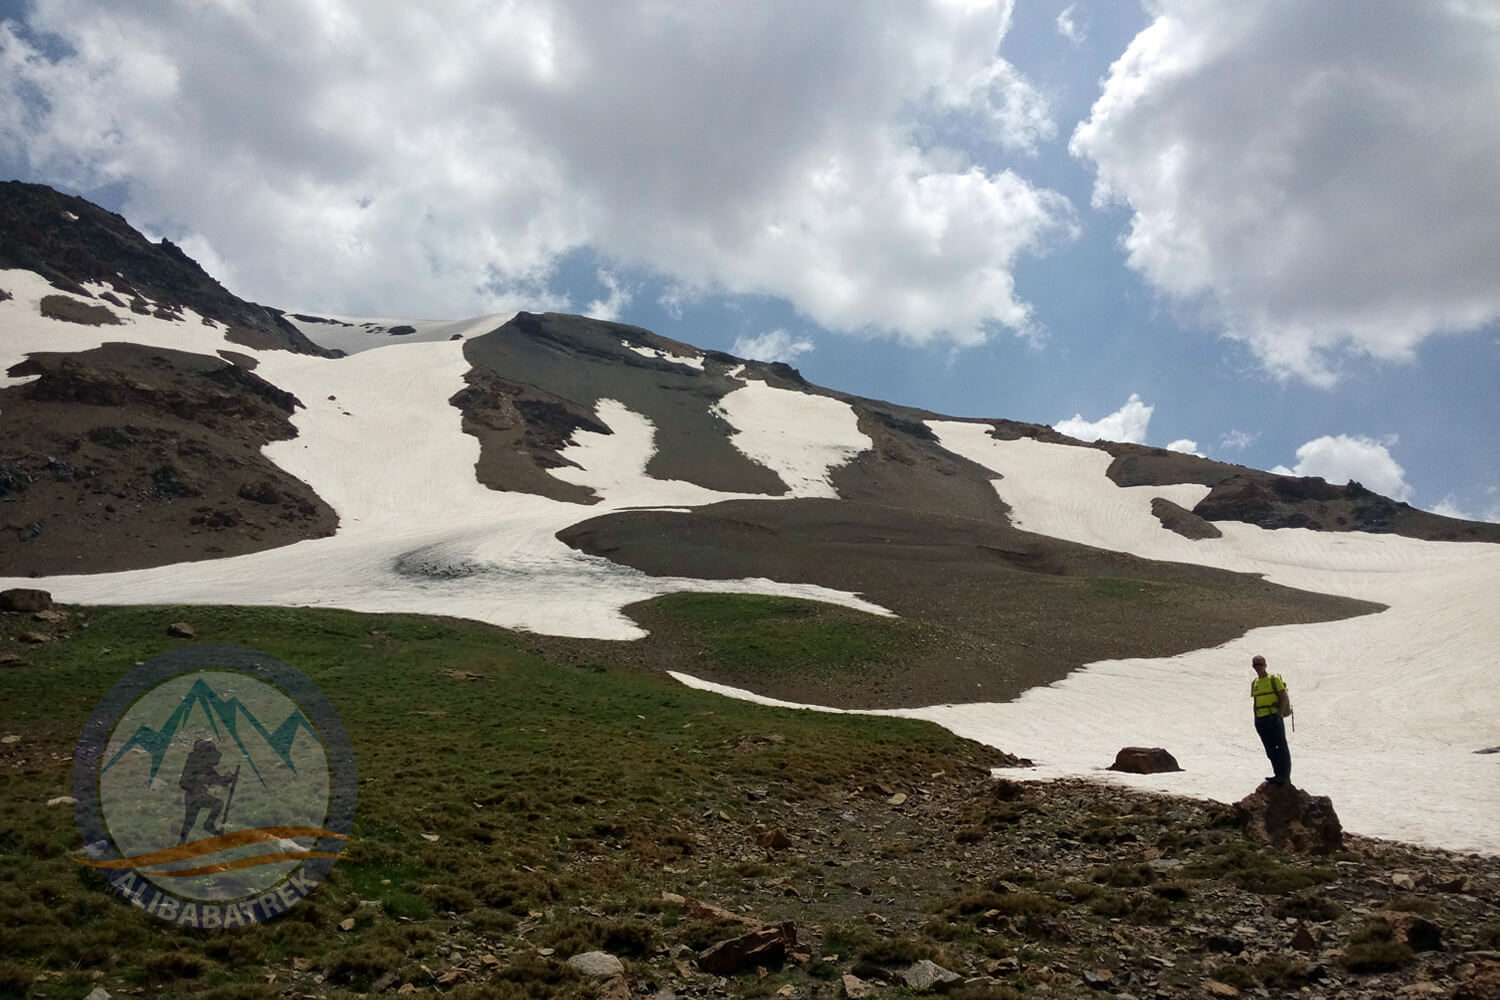 Alibabatrek damavand tour alamkuh trekking tour iran mountains tour alamkuh road